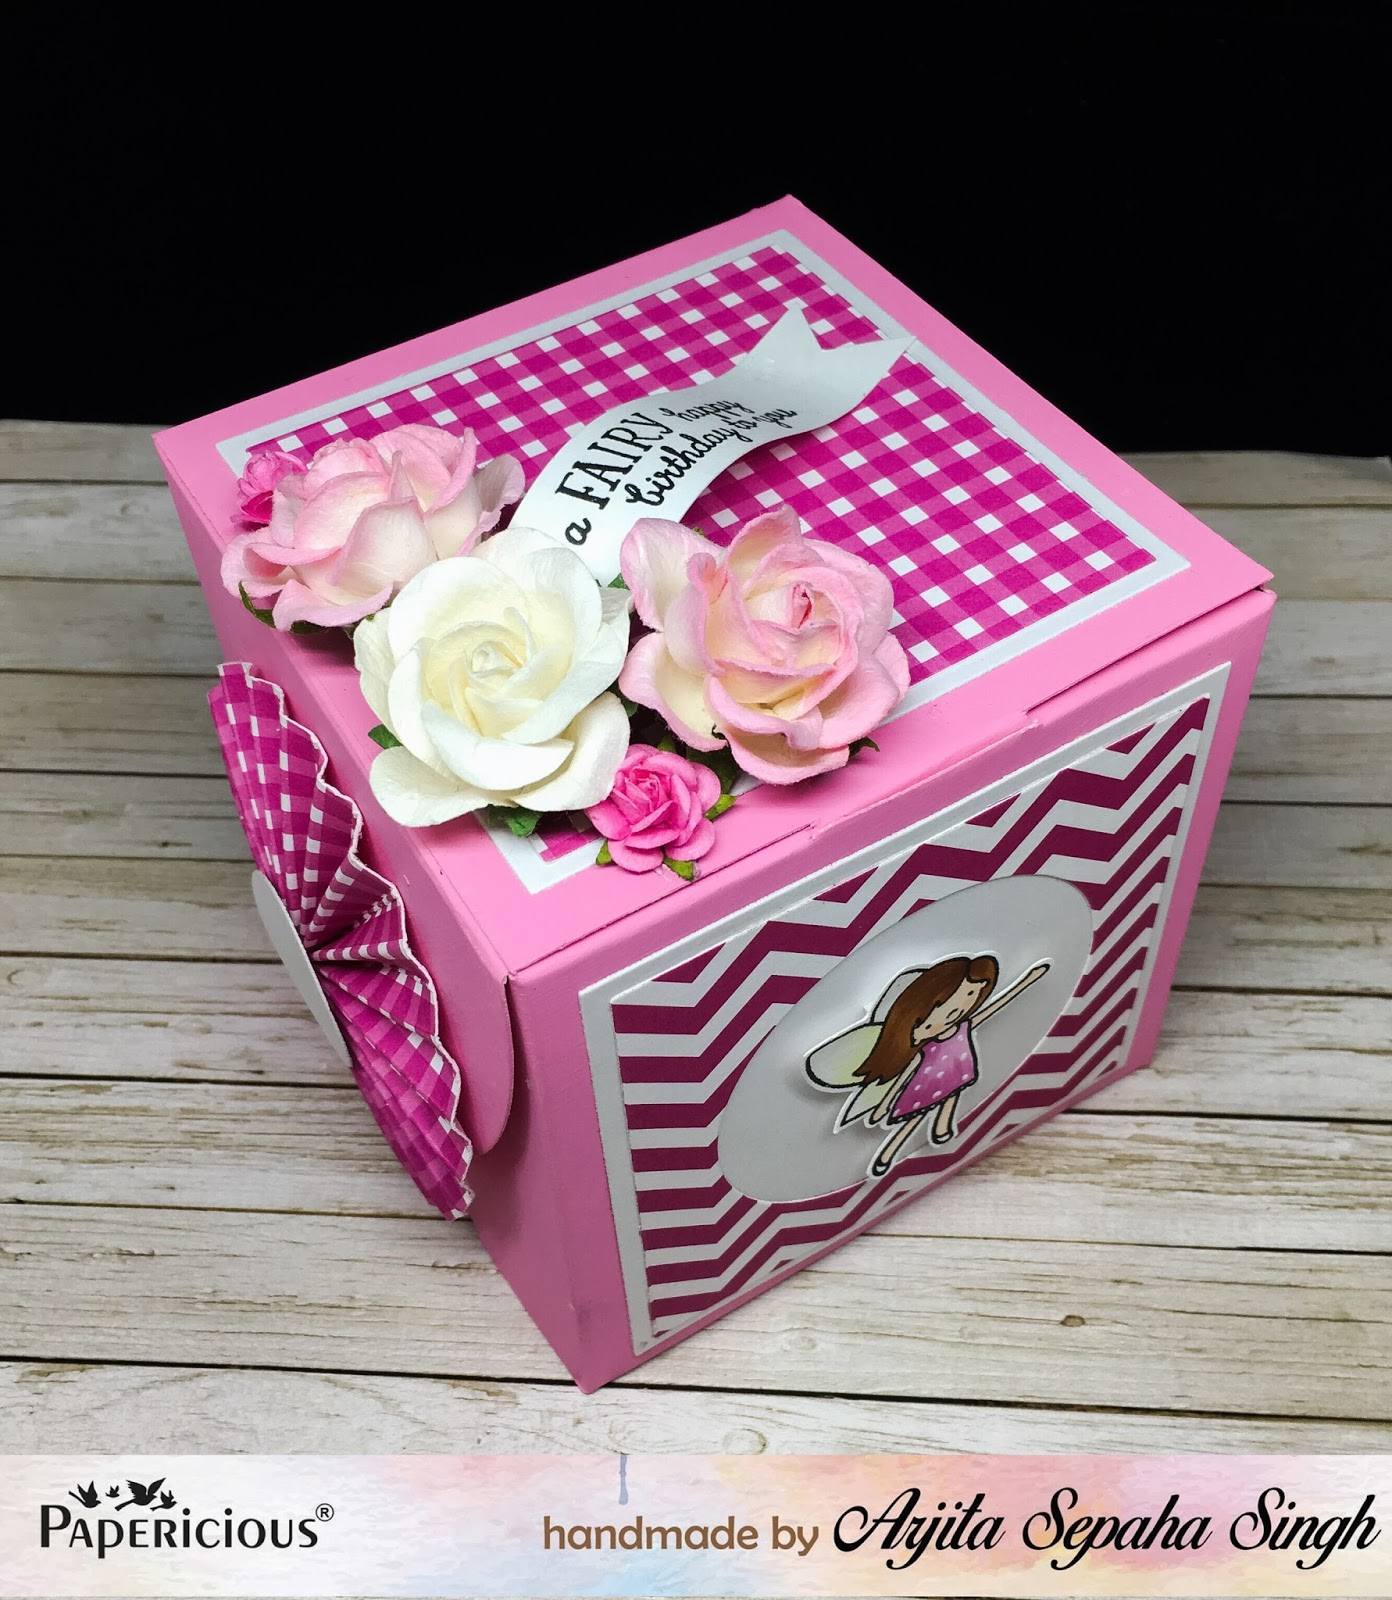 Cute Gift Boxes | Papericious